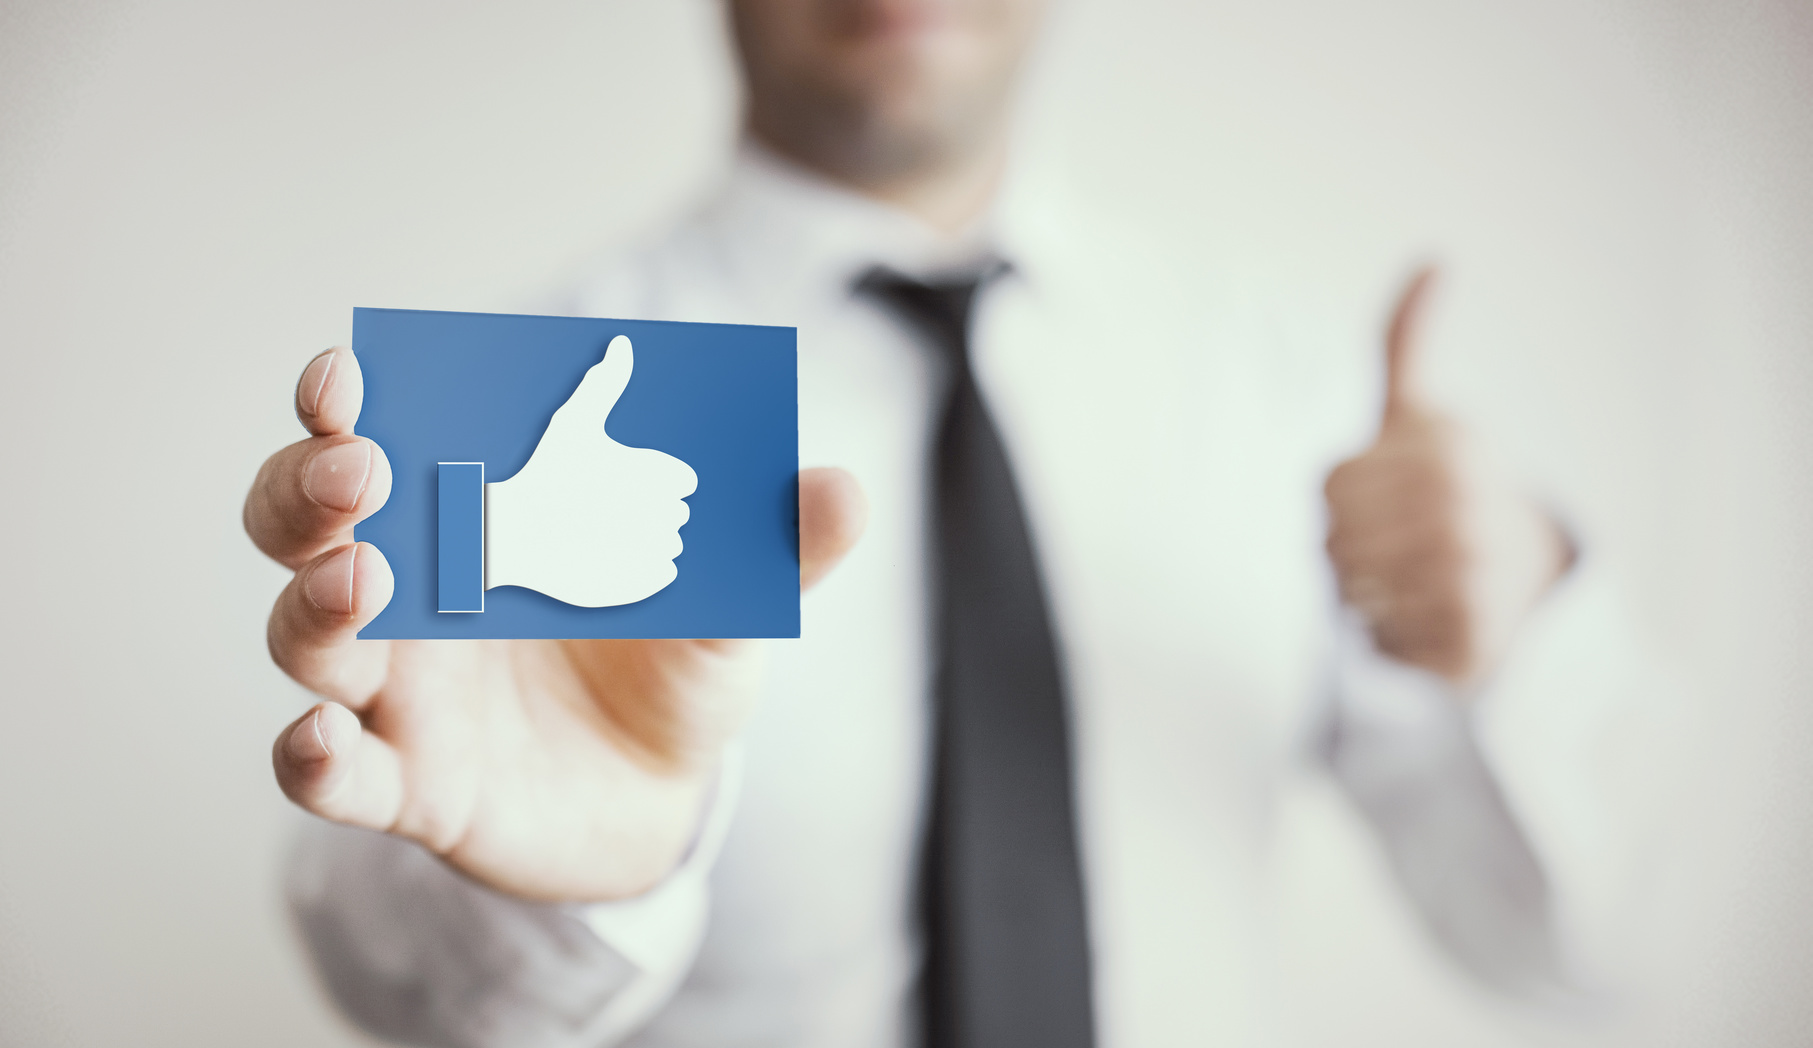 Facebook marketing content people crave